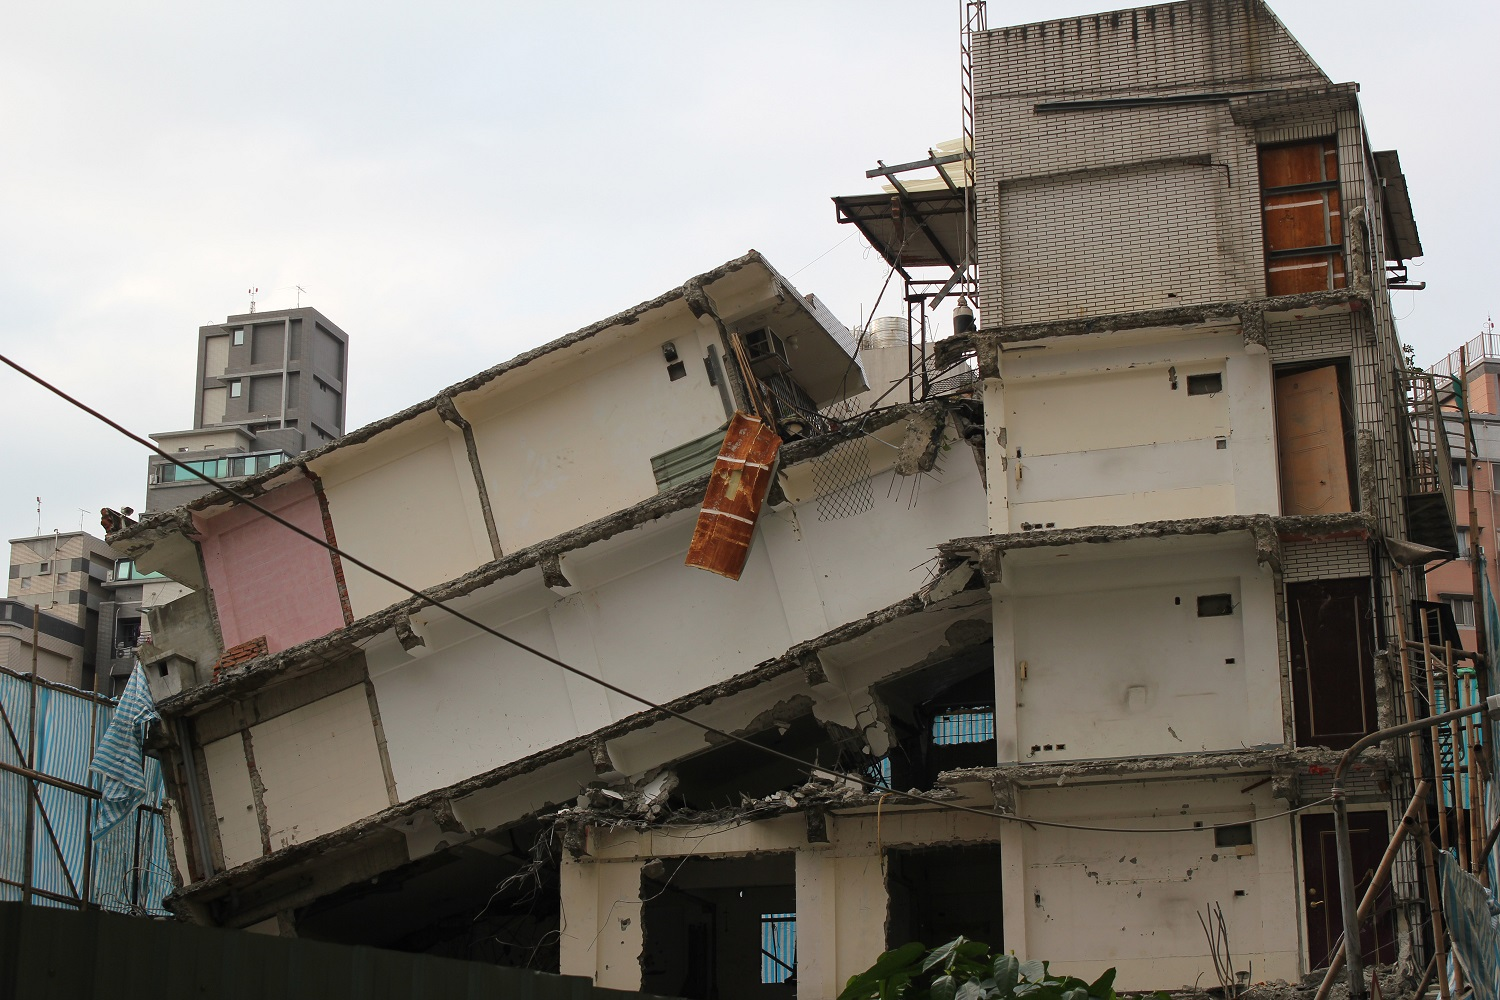 Ruins of what once was Chang's home on building's fourth floor.